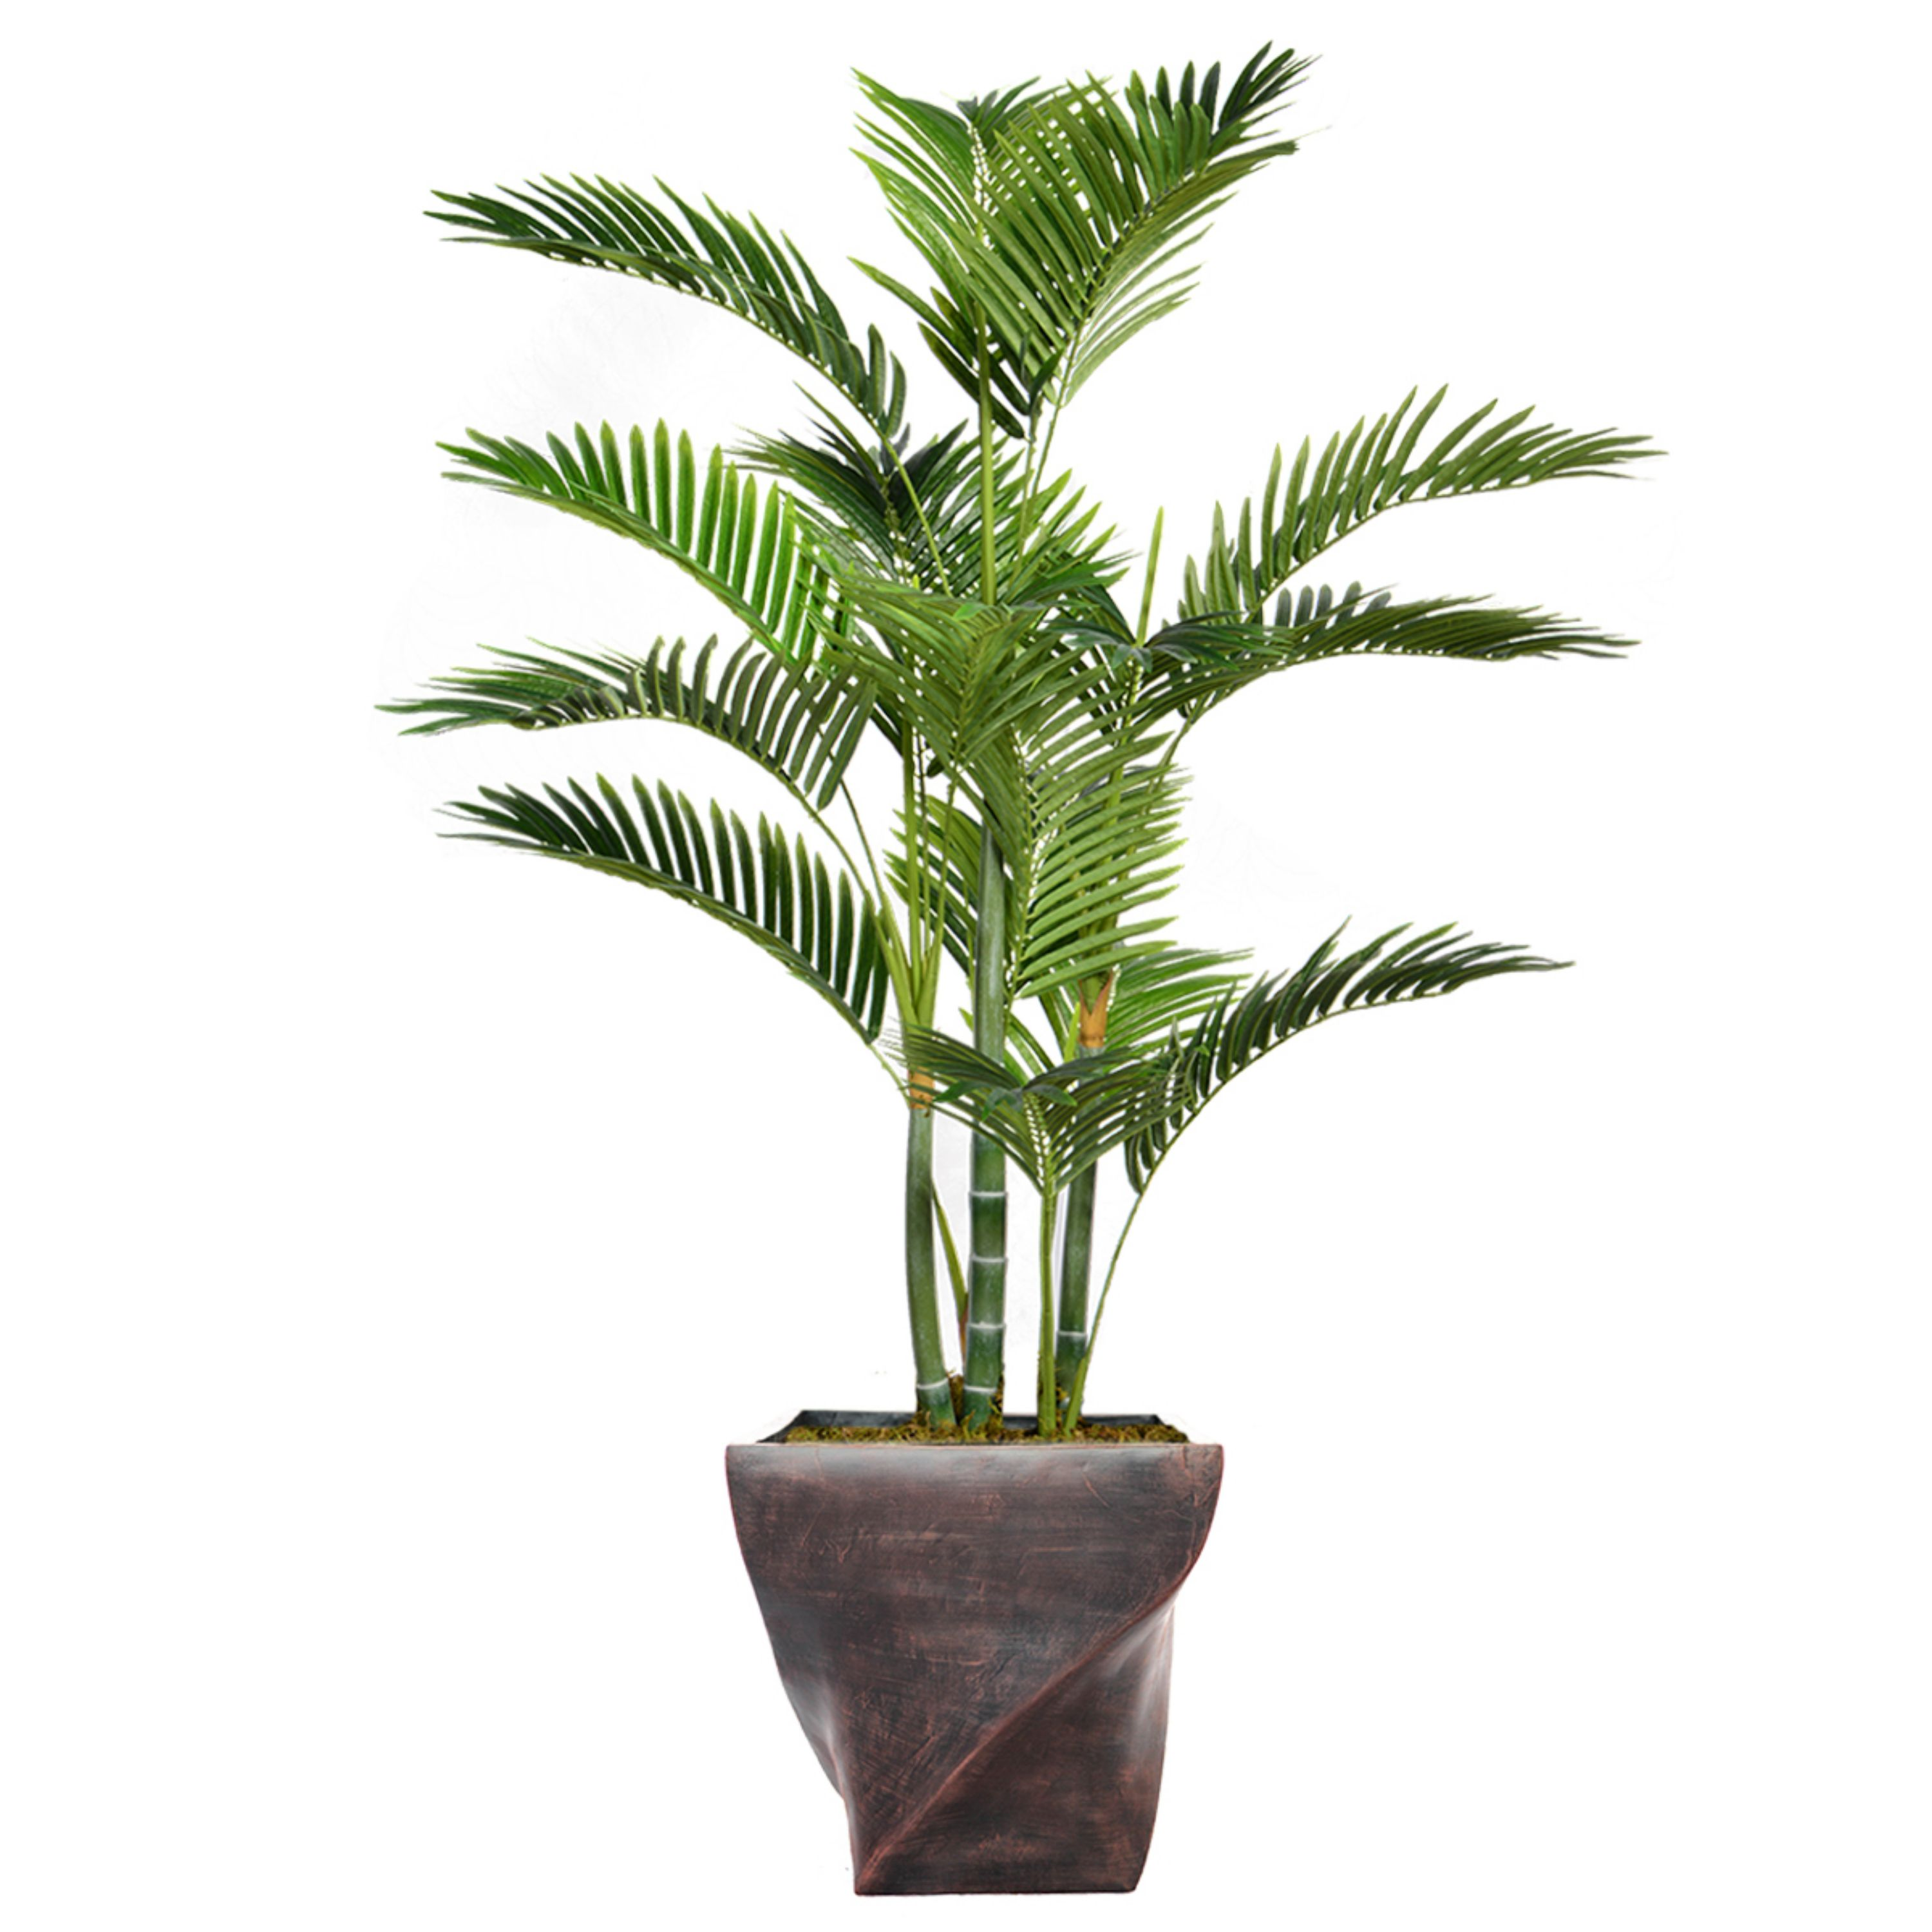 """57.5"""" Tall Palm Tree Artificial Indoor/ Outdoor Decorative Faux with Burlap Kit and Fiberstone Planter By Minx NY"""